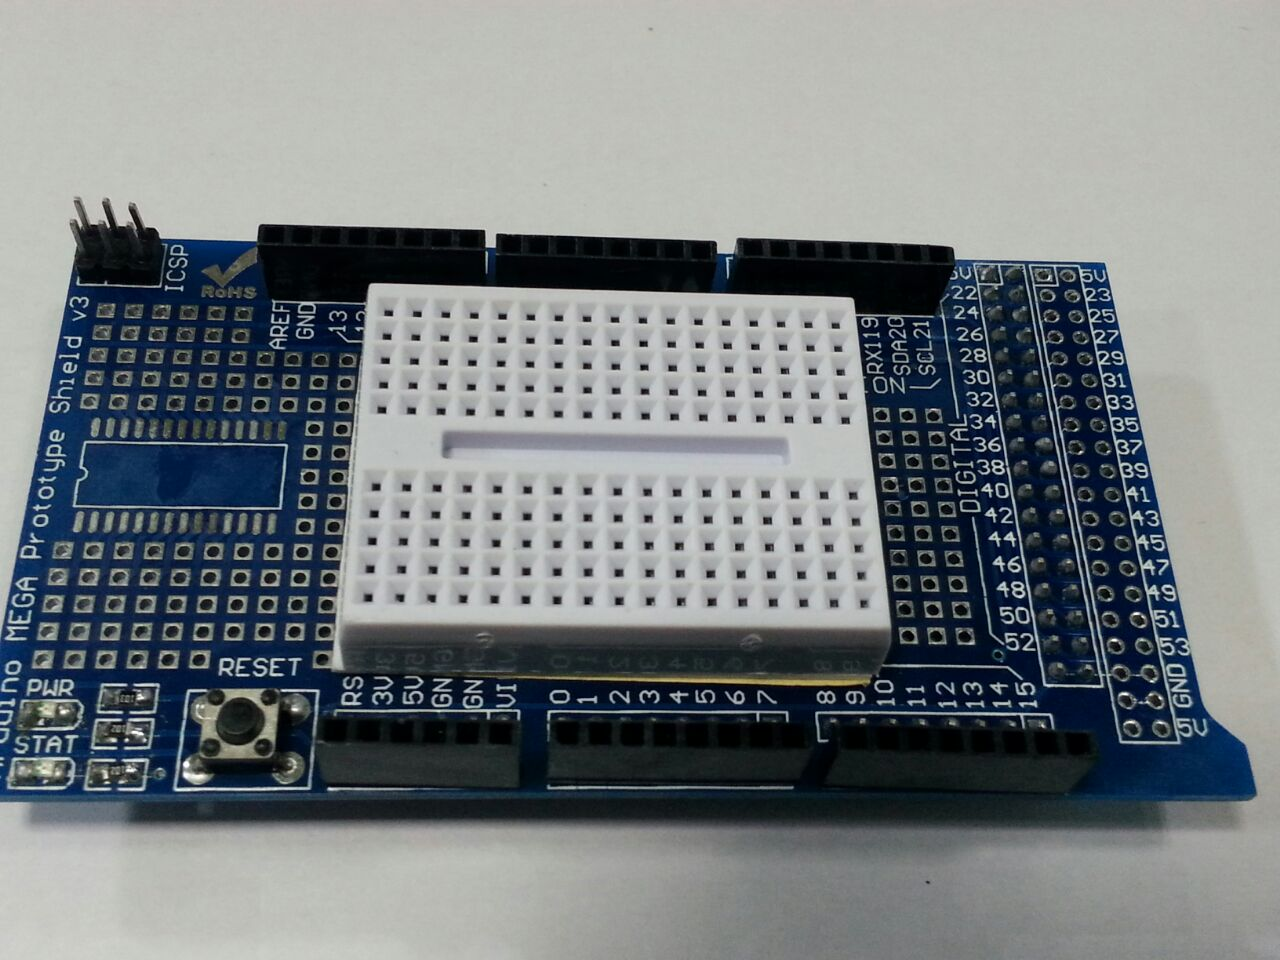 Mega Shield Breadboard Rajiv Electronics Breadboards Are Used To Prototype Electronic Circuits Without Having